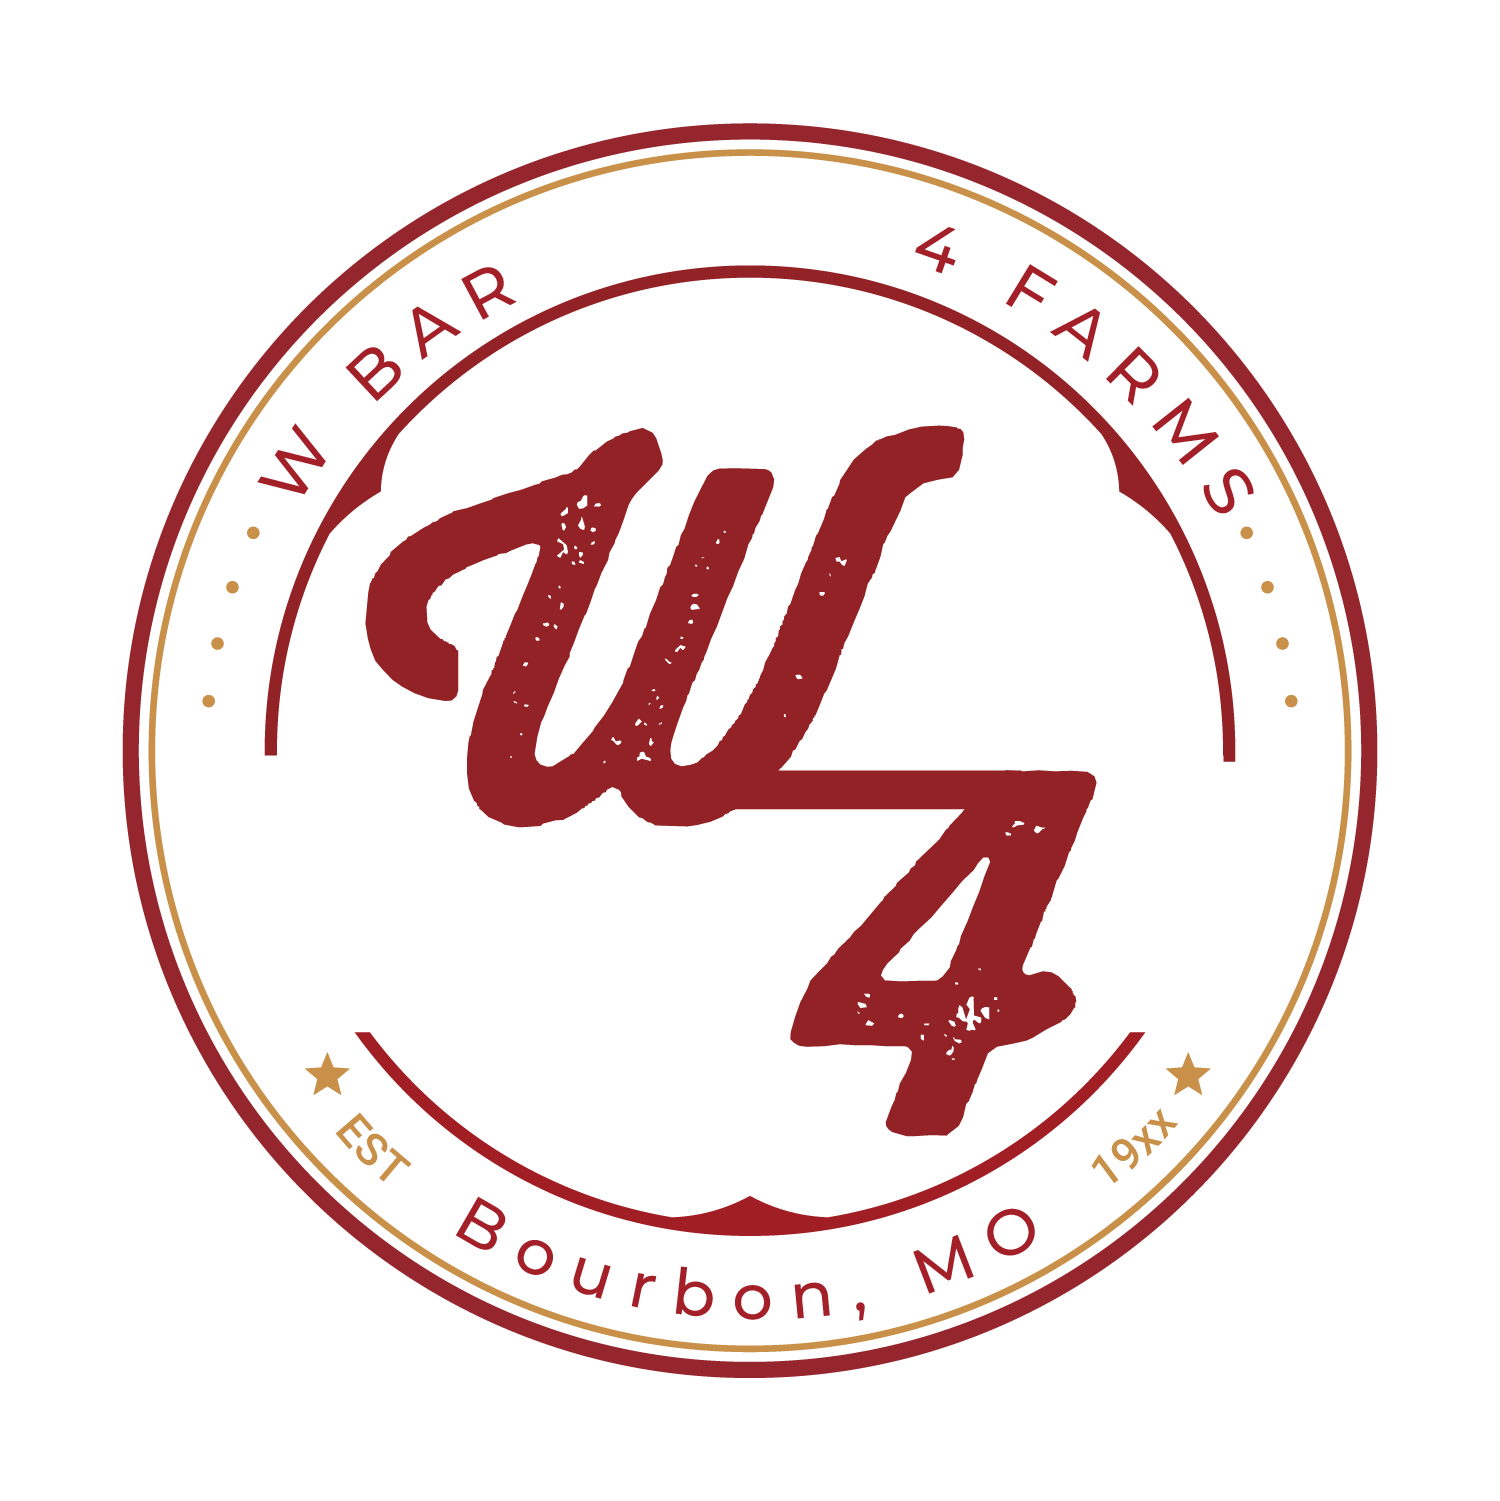 Helping W4 Bar Farms Create a Logo